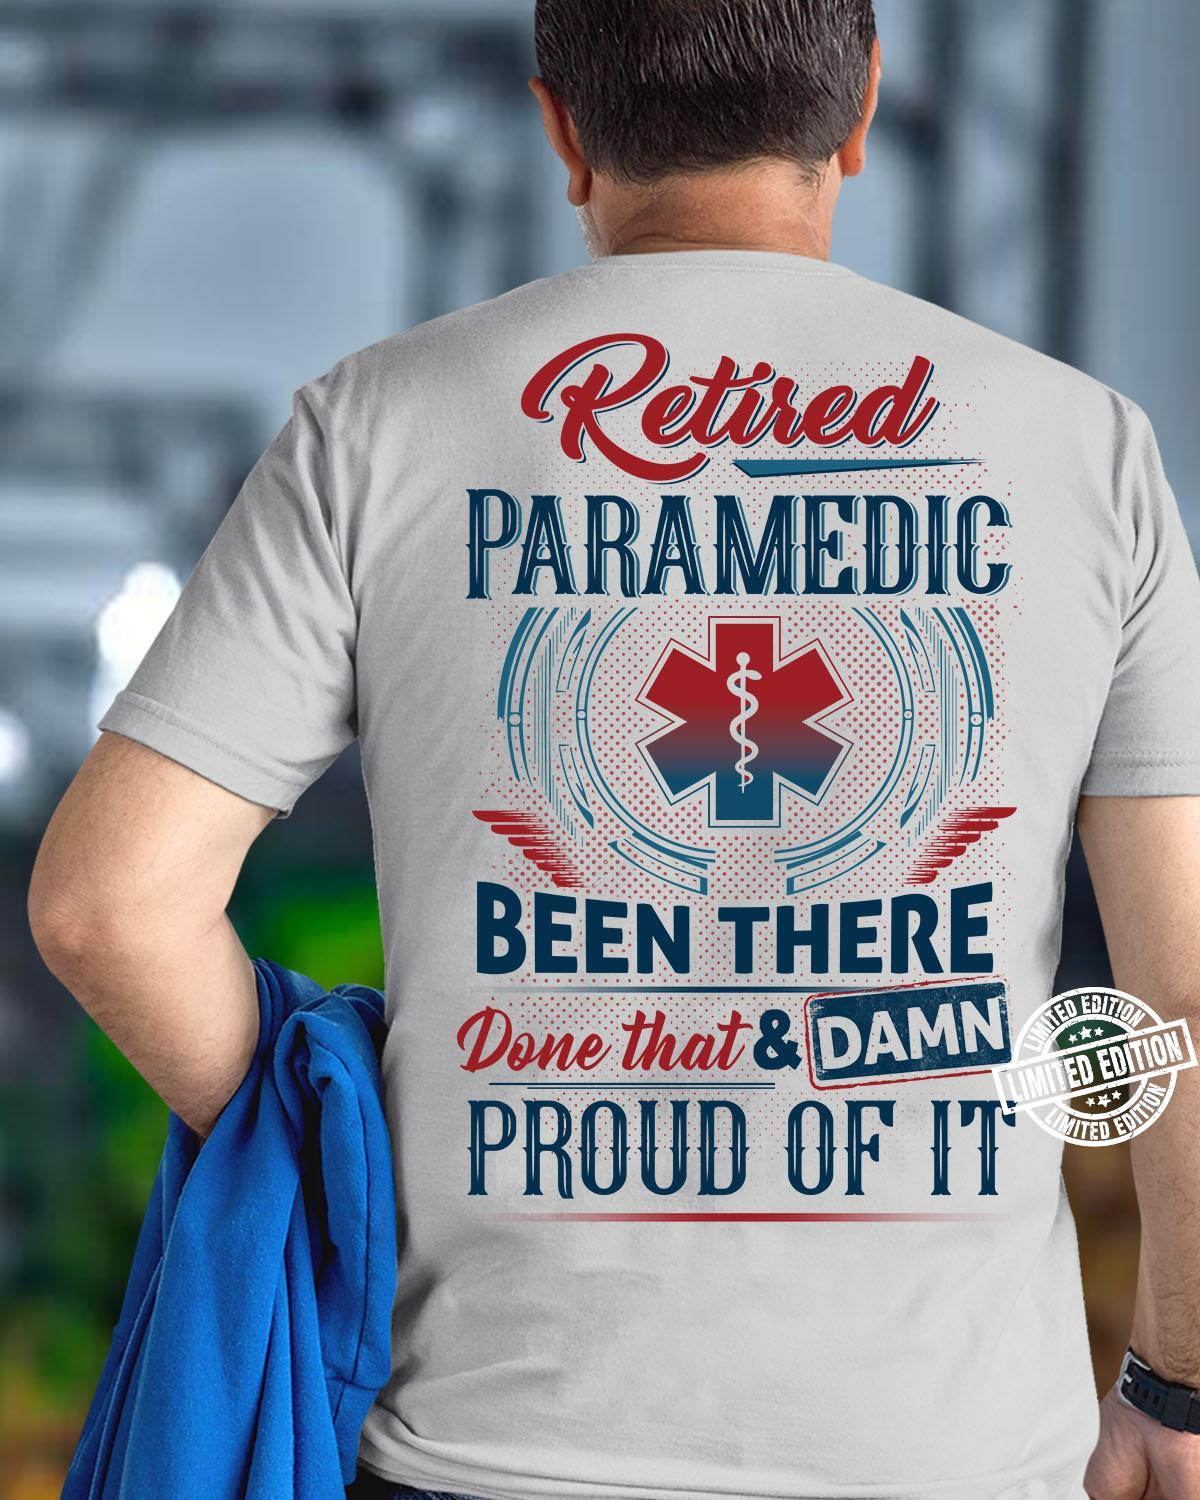 Retired paramedic been there done that and damn proud of it shirt